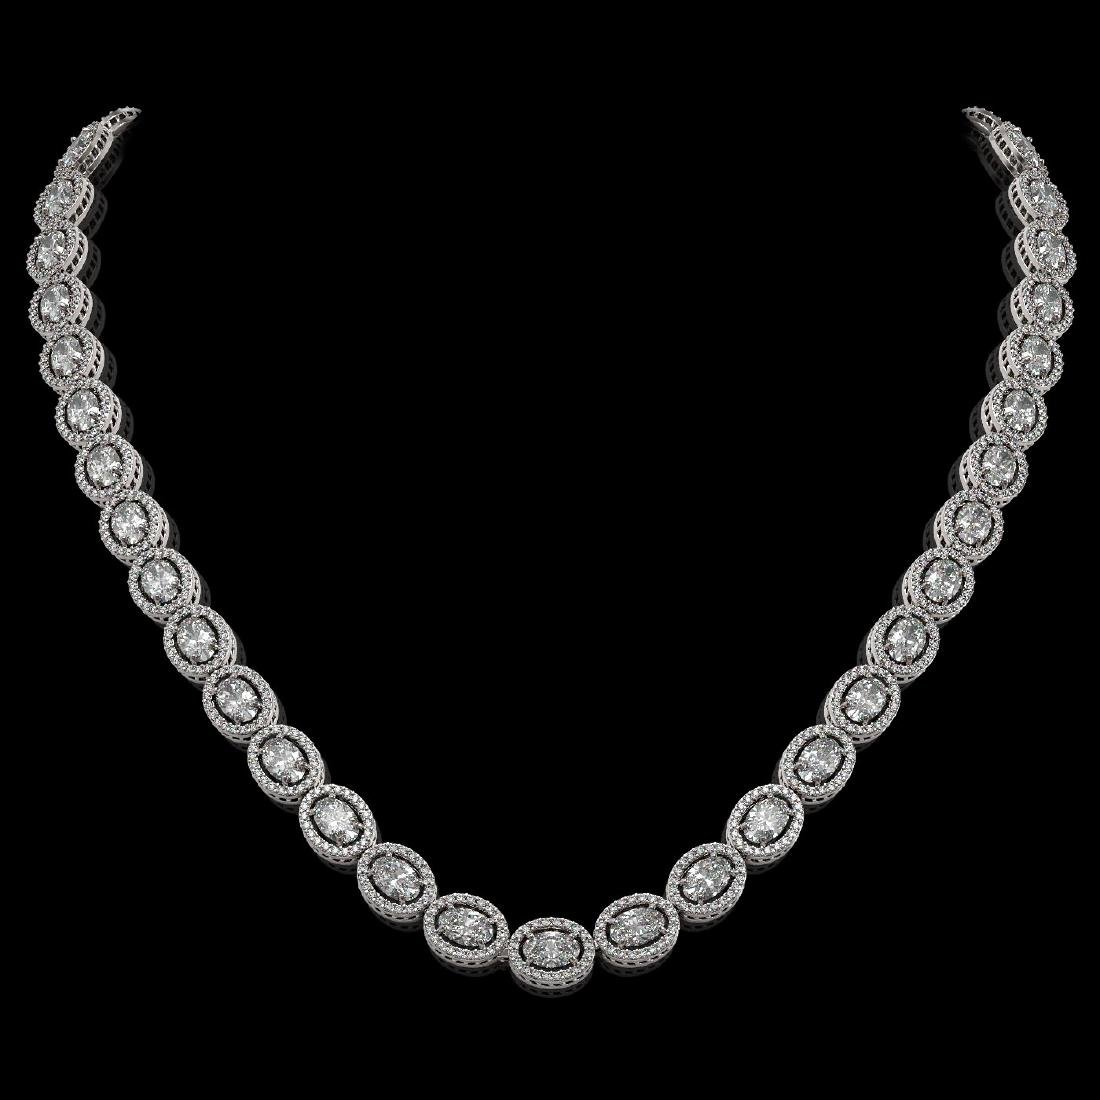 30.41 CTW Oval Diamond Designer Necklace 18K White Gold